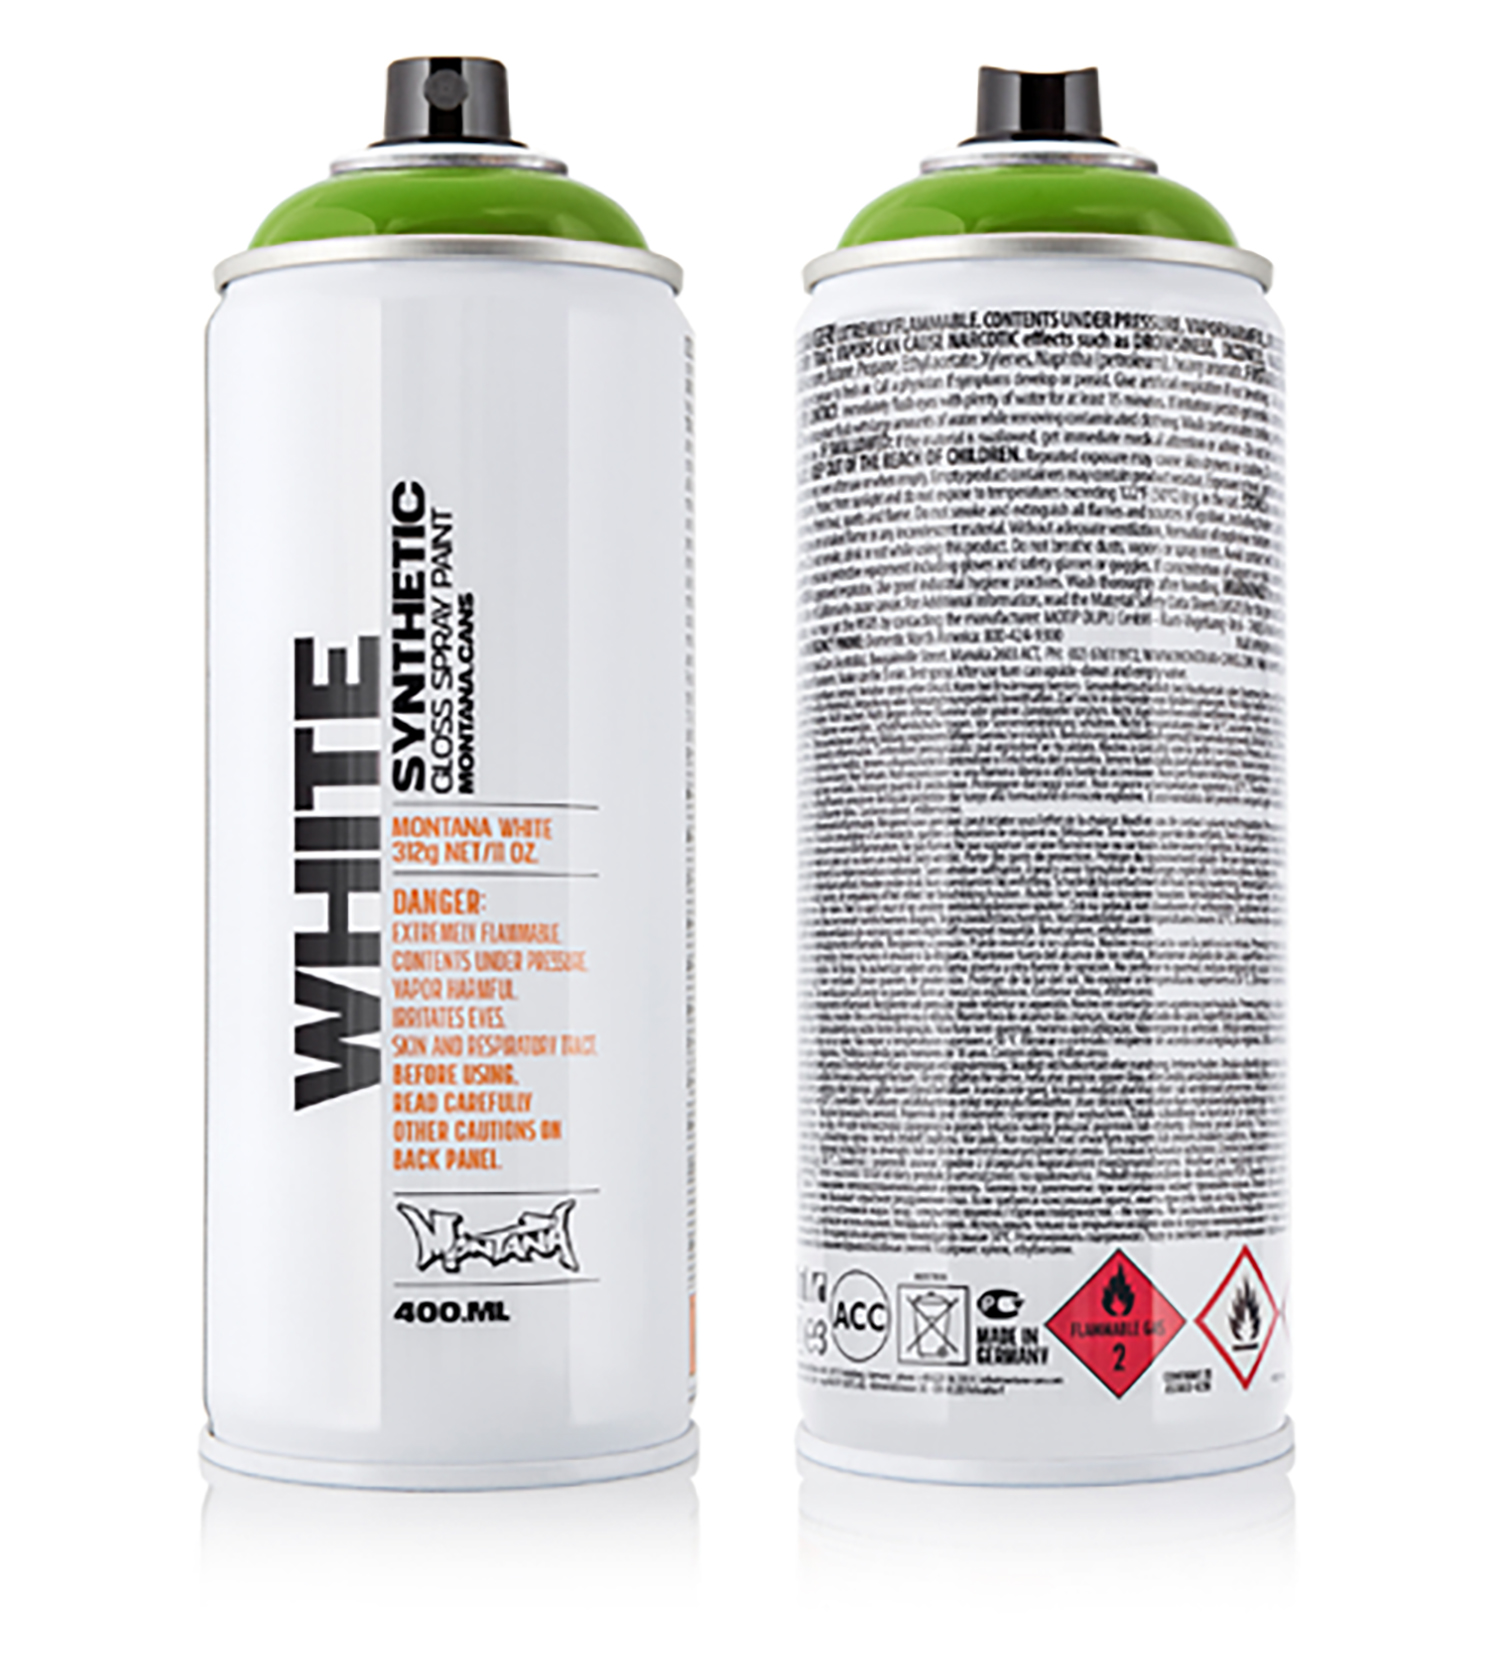 MONTANA-WHITE-SPRAY-400ML-6050